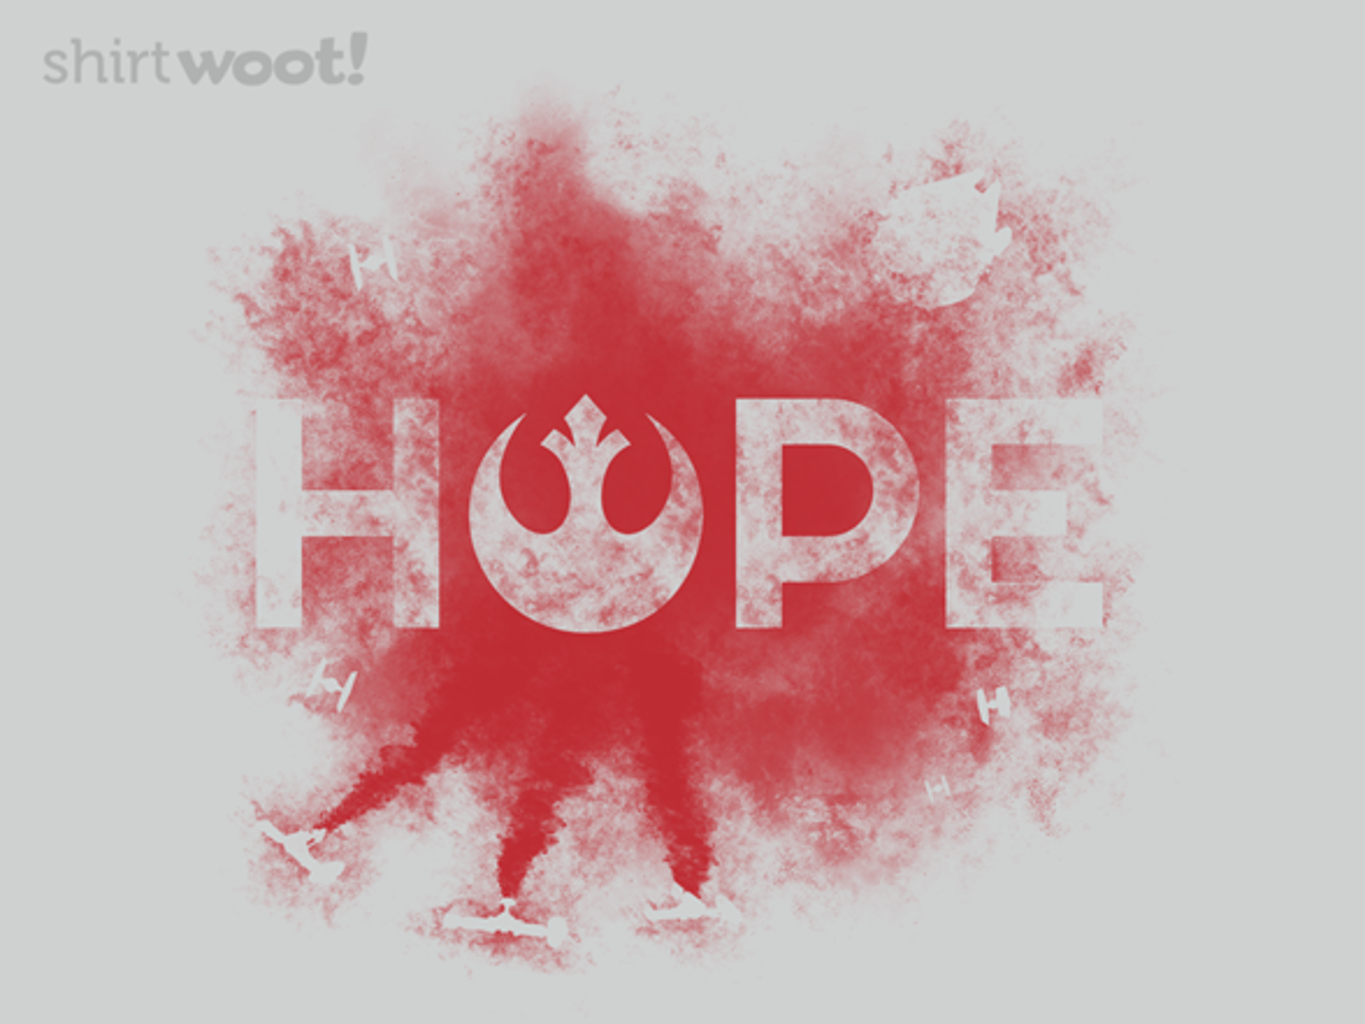 Woot!: The Last Hope - $15.00 + Free shipping